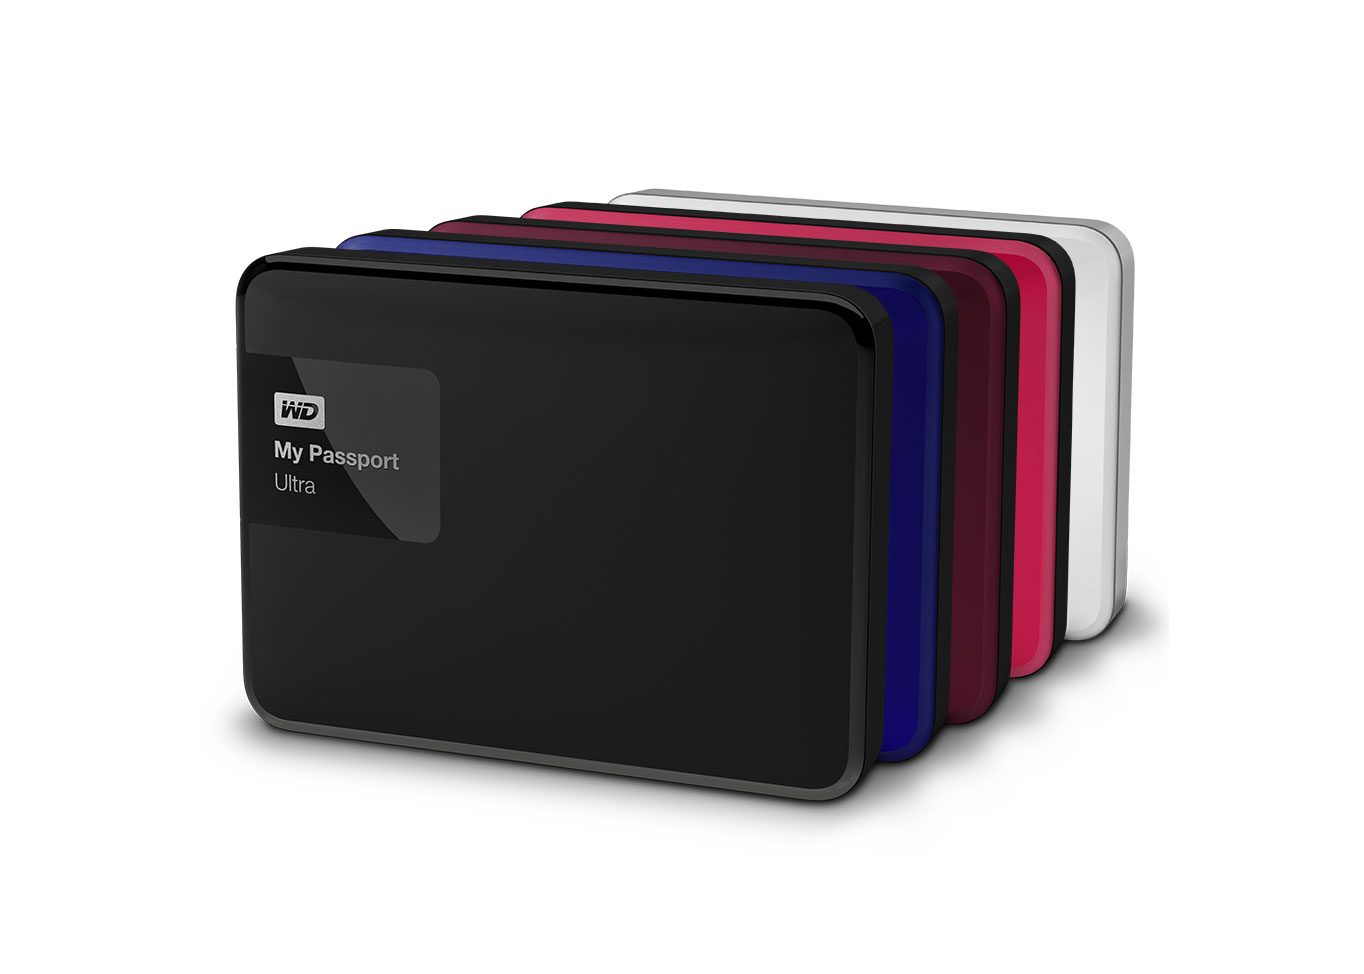 WD My Passport Ultra Review